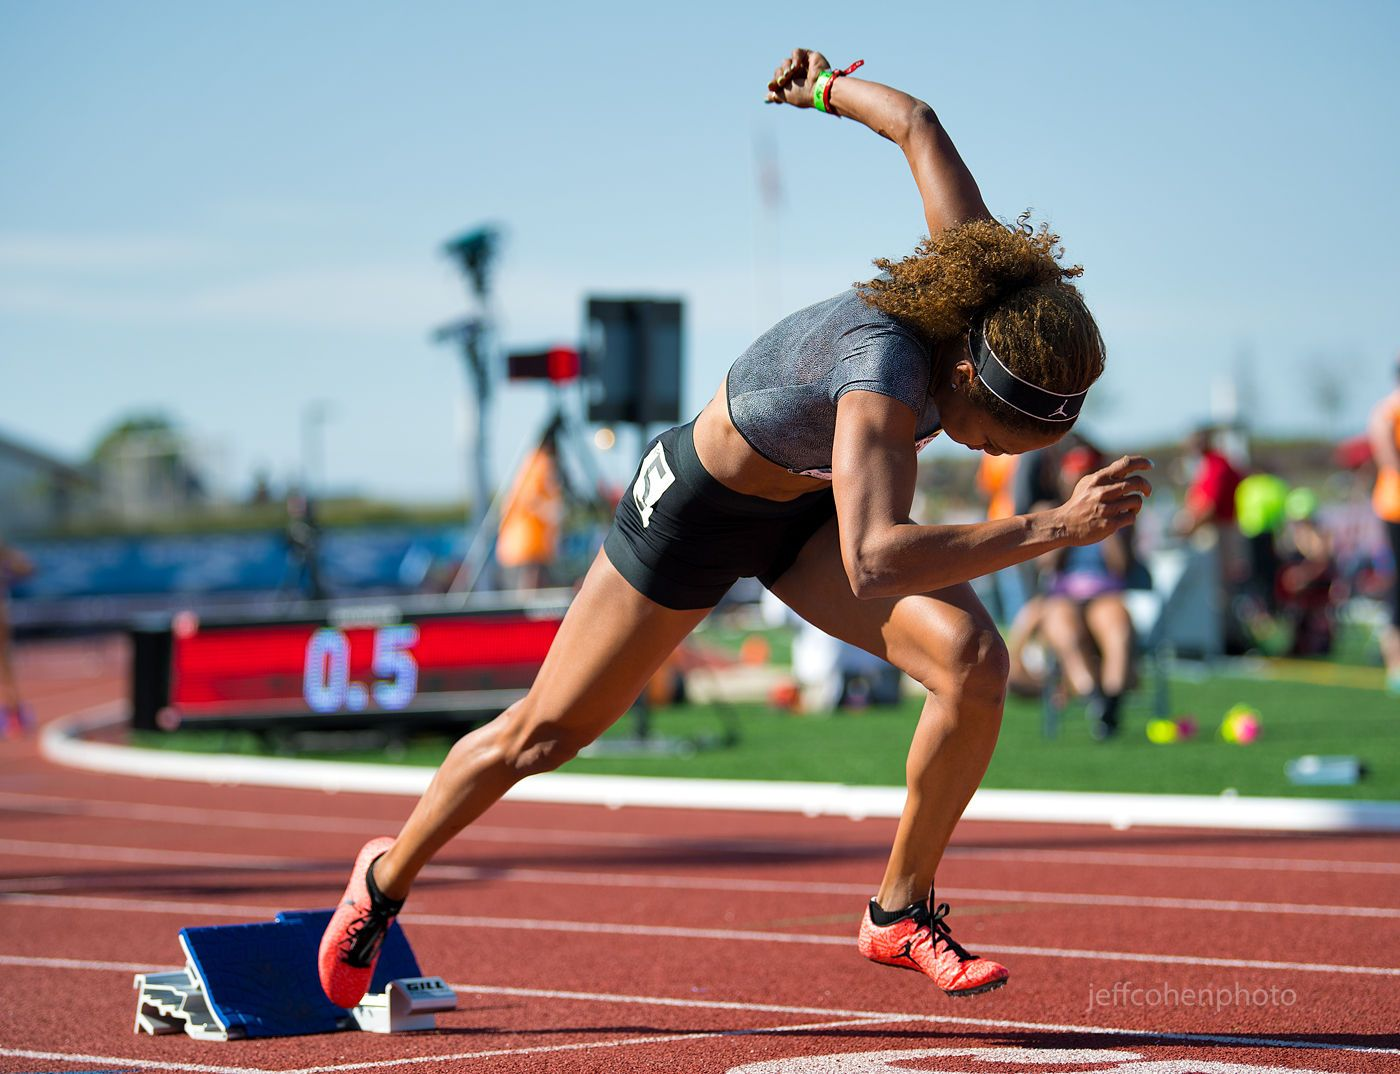 1r2017_mt_sac_relays_kori_carter_400mh__jeff_cohen_photo__2575_web.jpg